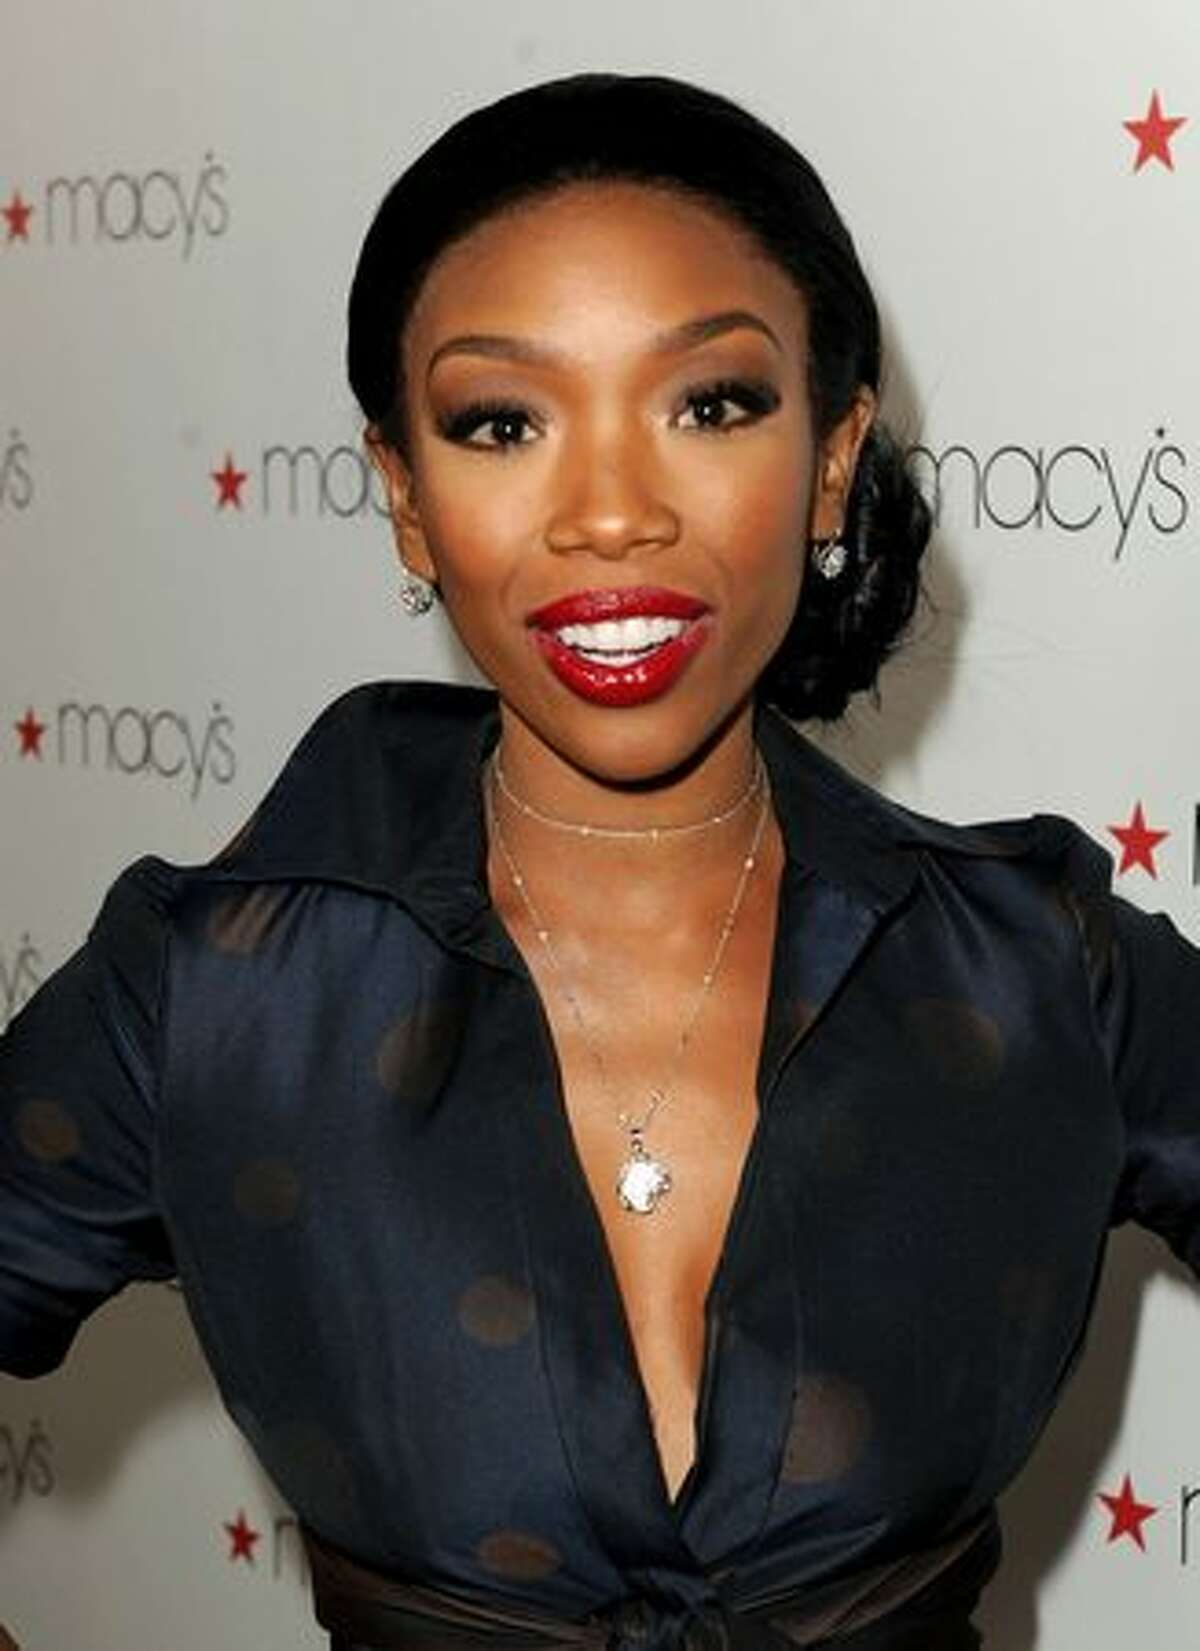 Singer Brandy arrives at Glamorama presented by Macy's Passport at the Orpheum Theatre in Los Angeles, California.